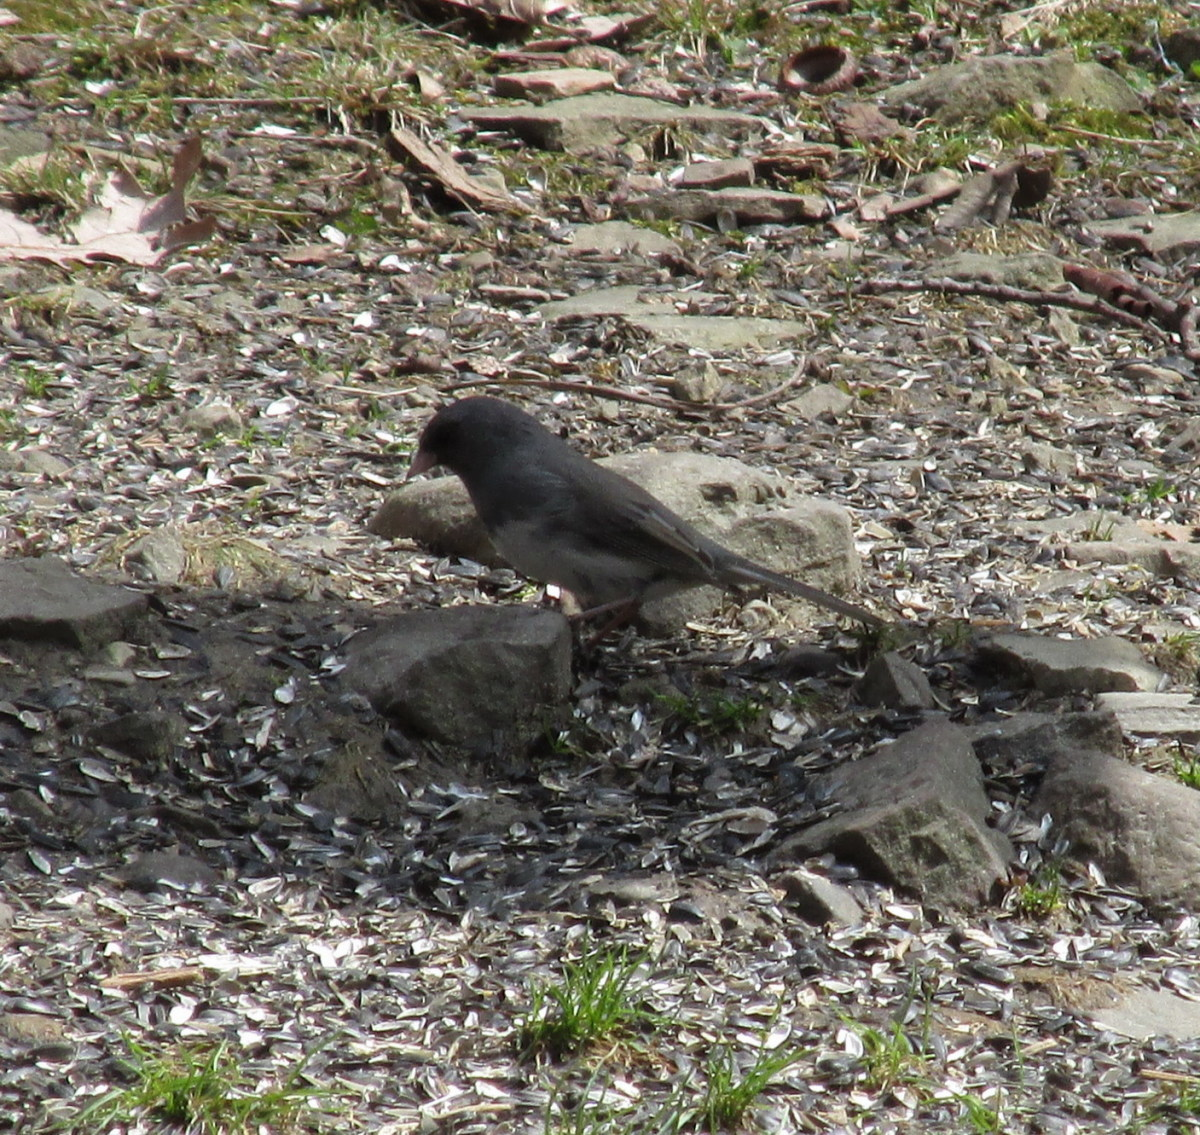 Male Slate-Colored Junco foraging under bird feeders.